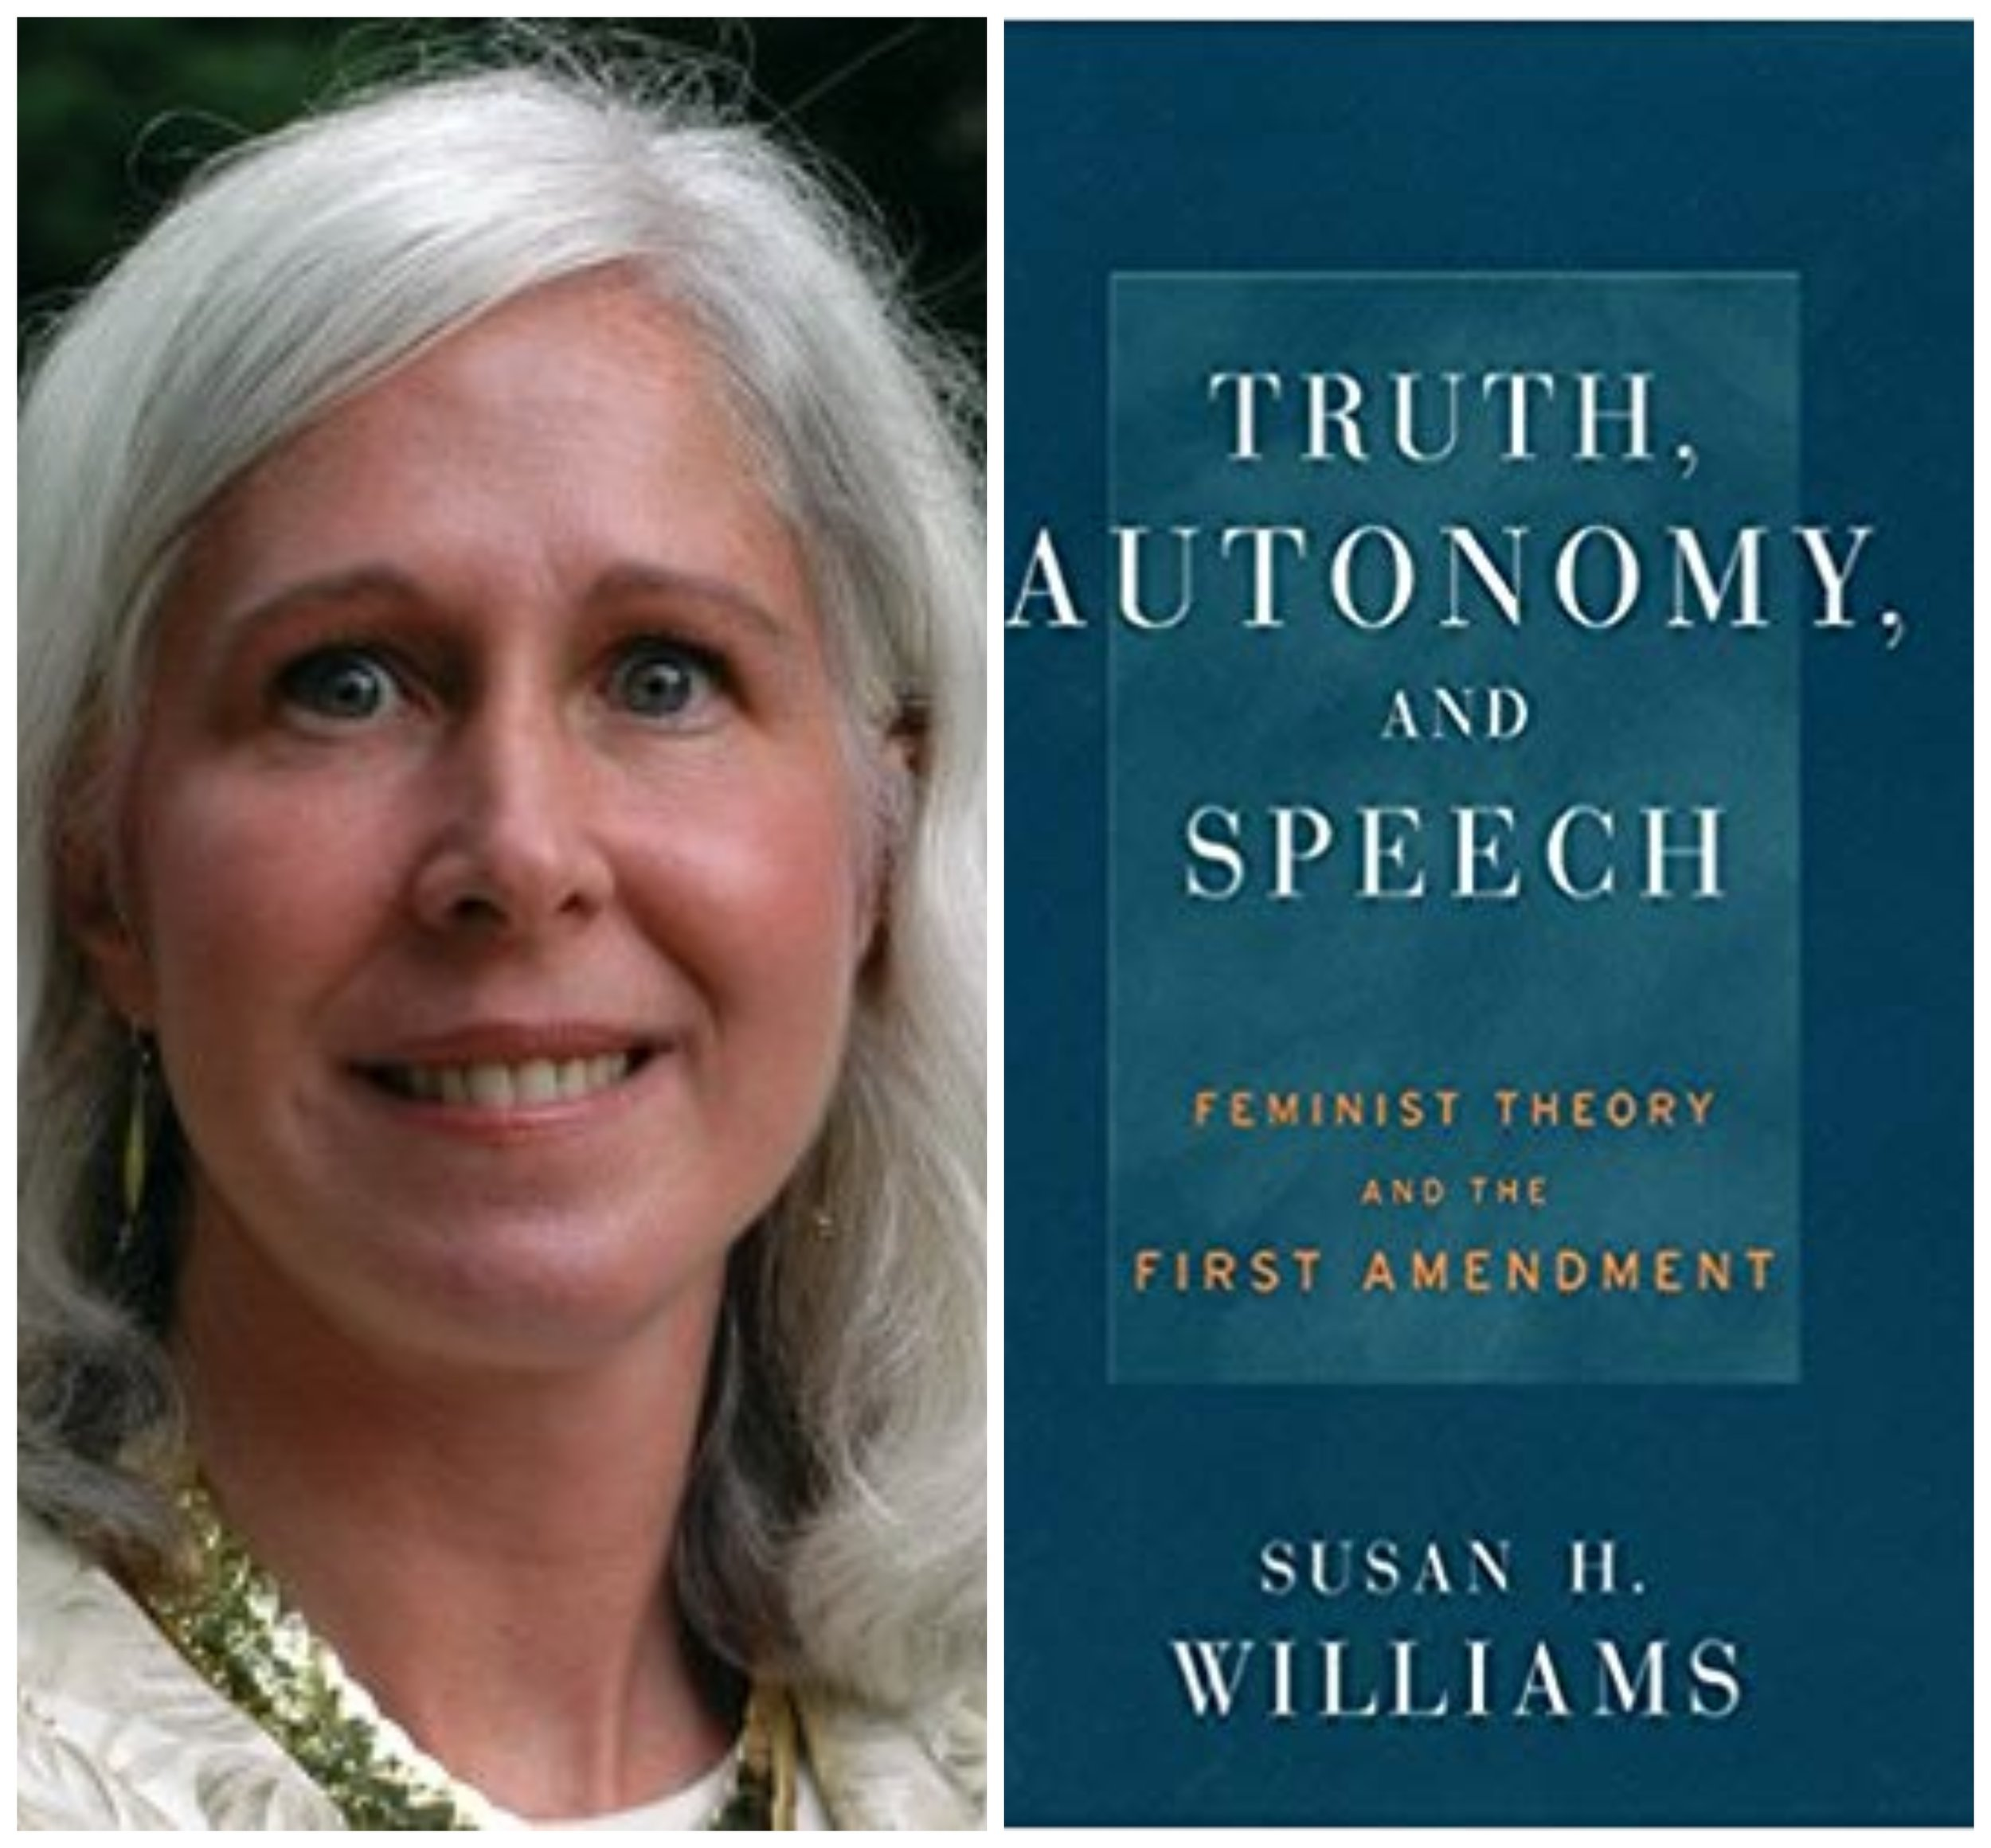 FREE SPEECH 48: Truth, Autonomy and Free Speech, with Susan Williams - READ MORE